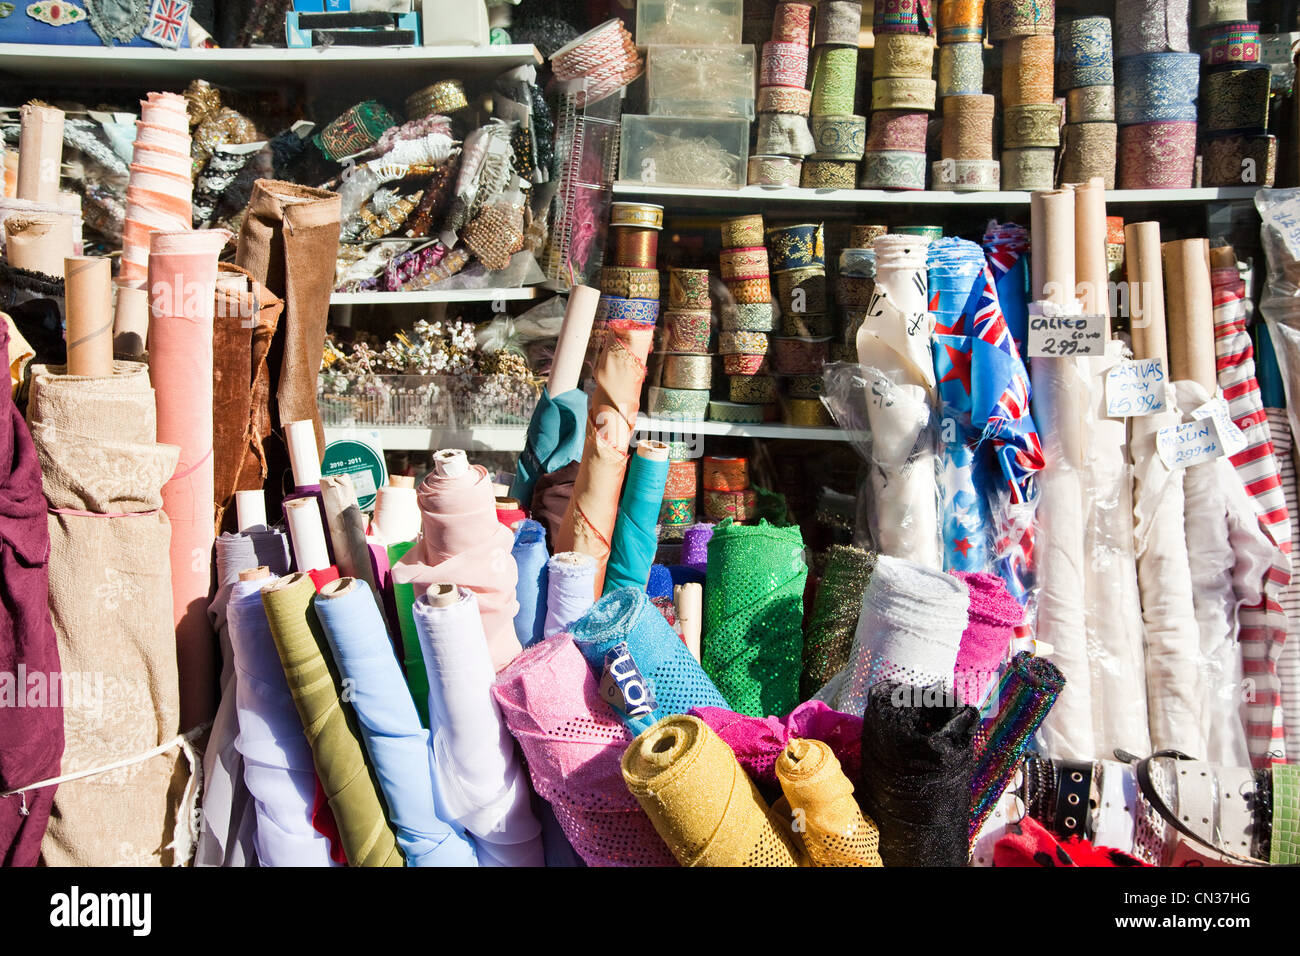 Fabric for sale - Stock Image